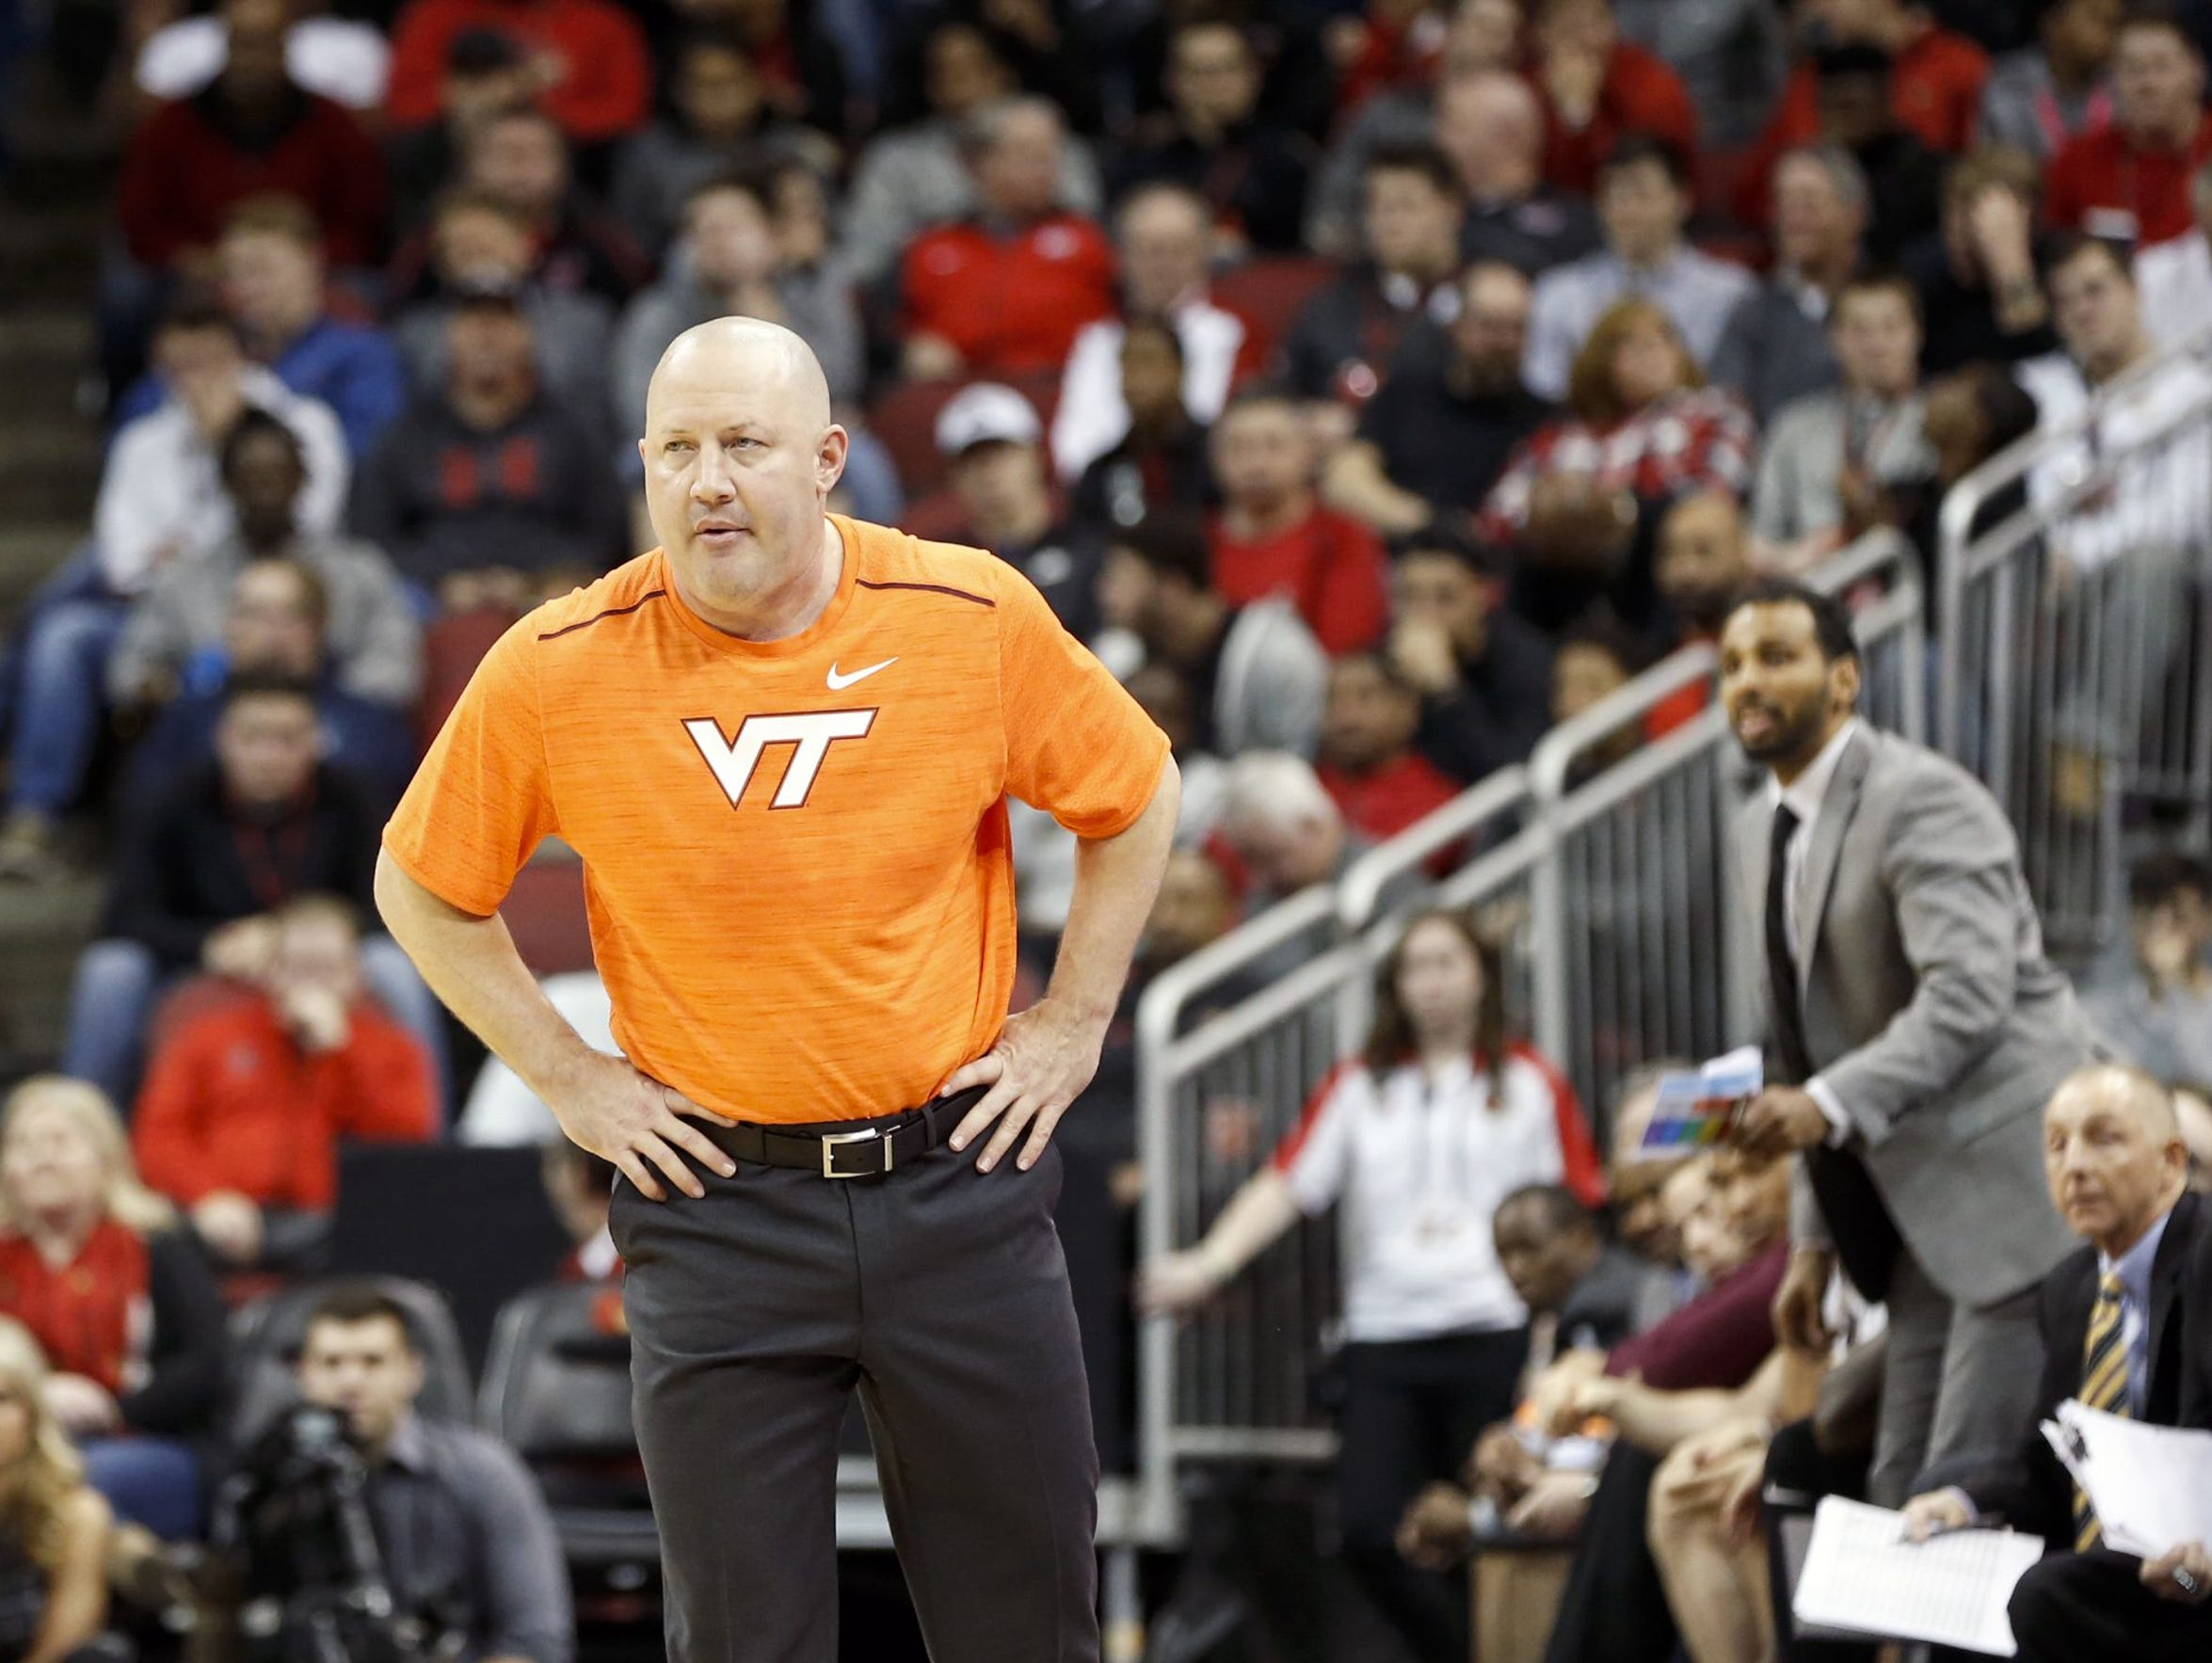 Virginia Tech's Buzz Williams coached the second half